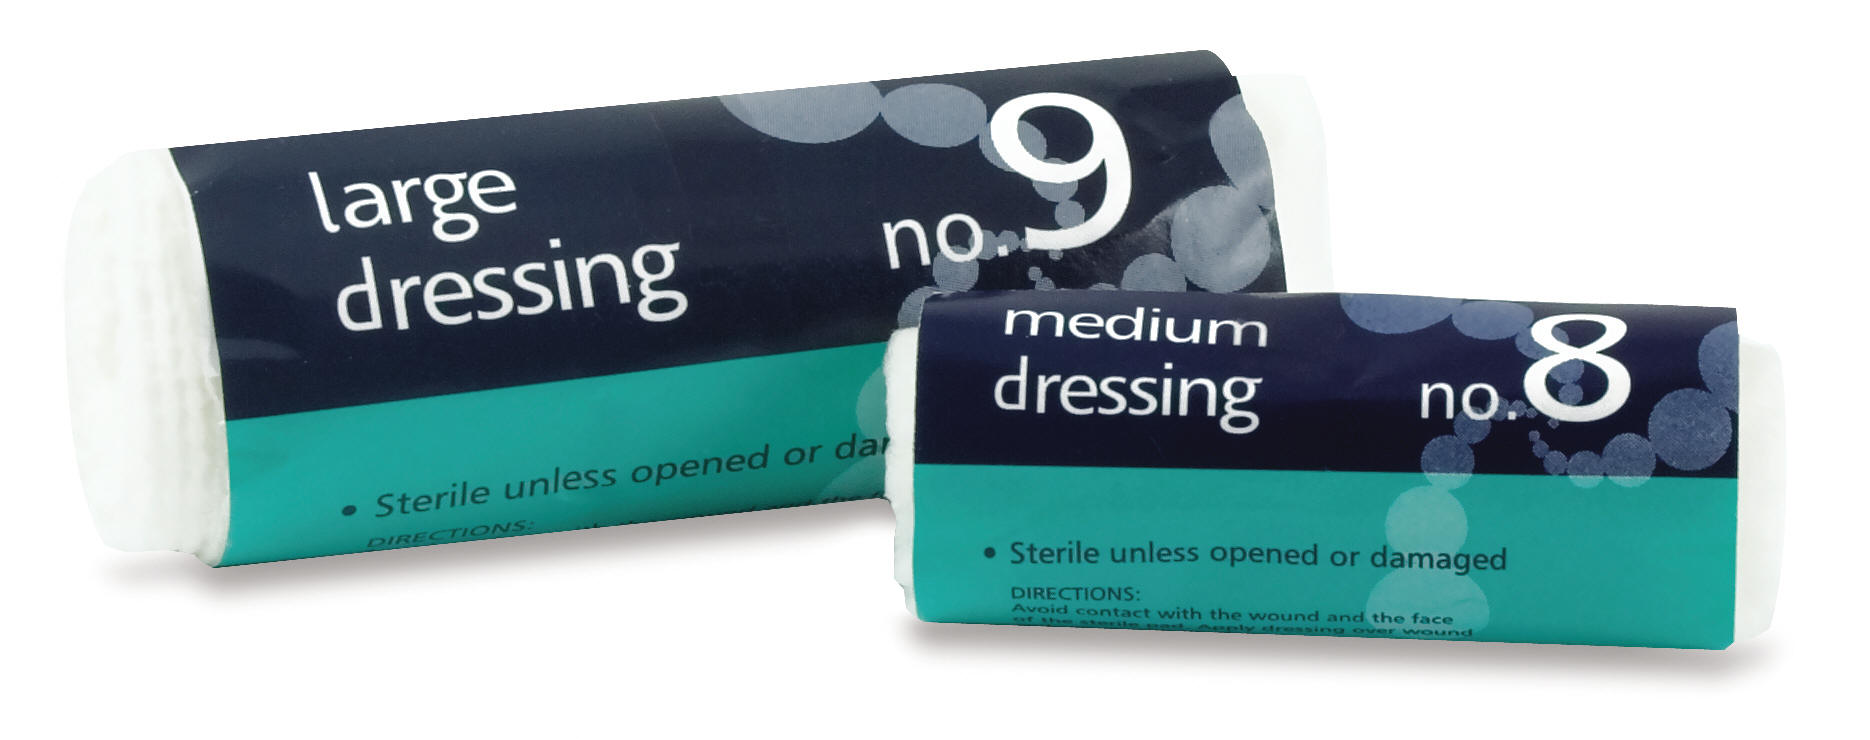 First Aid Sterile Dressing AMBULANCE DRESSINGS